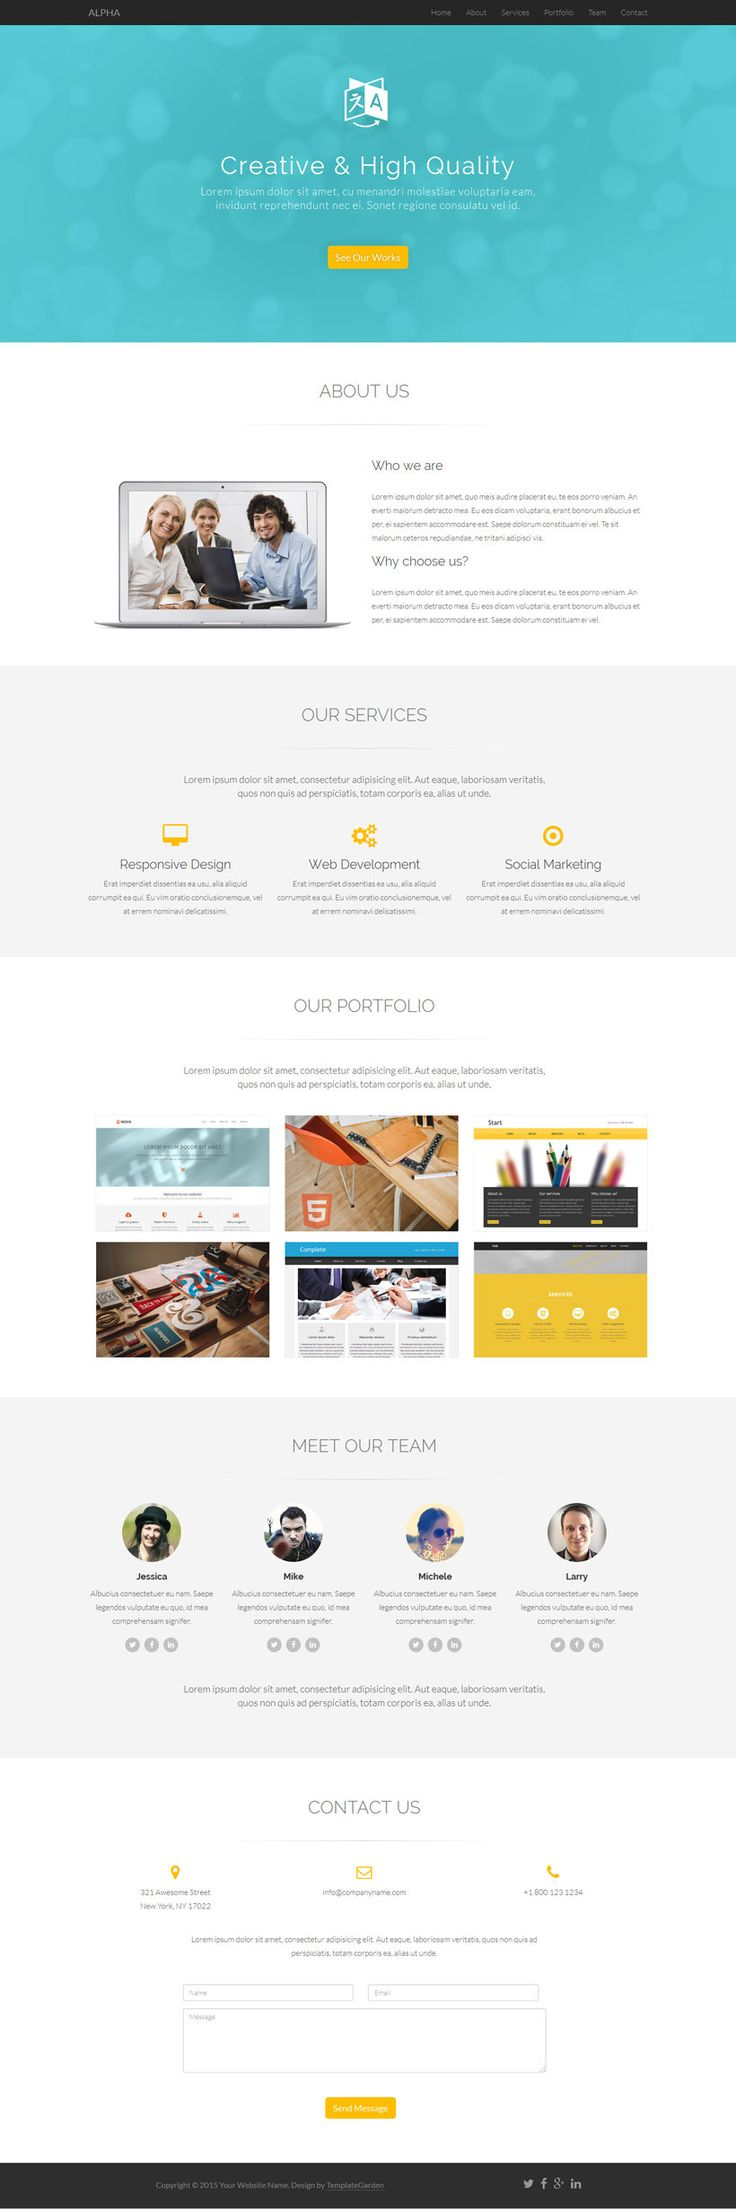 33 best Free One Page HTML Templates images on Pinterest | Website ...